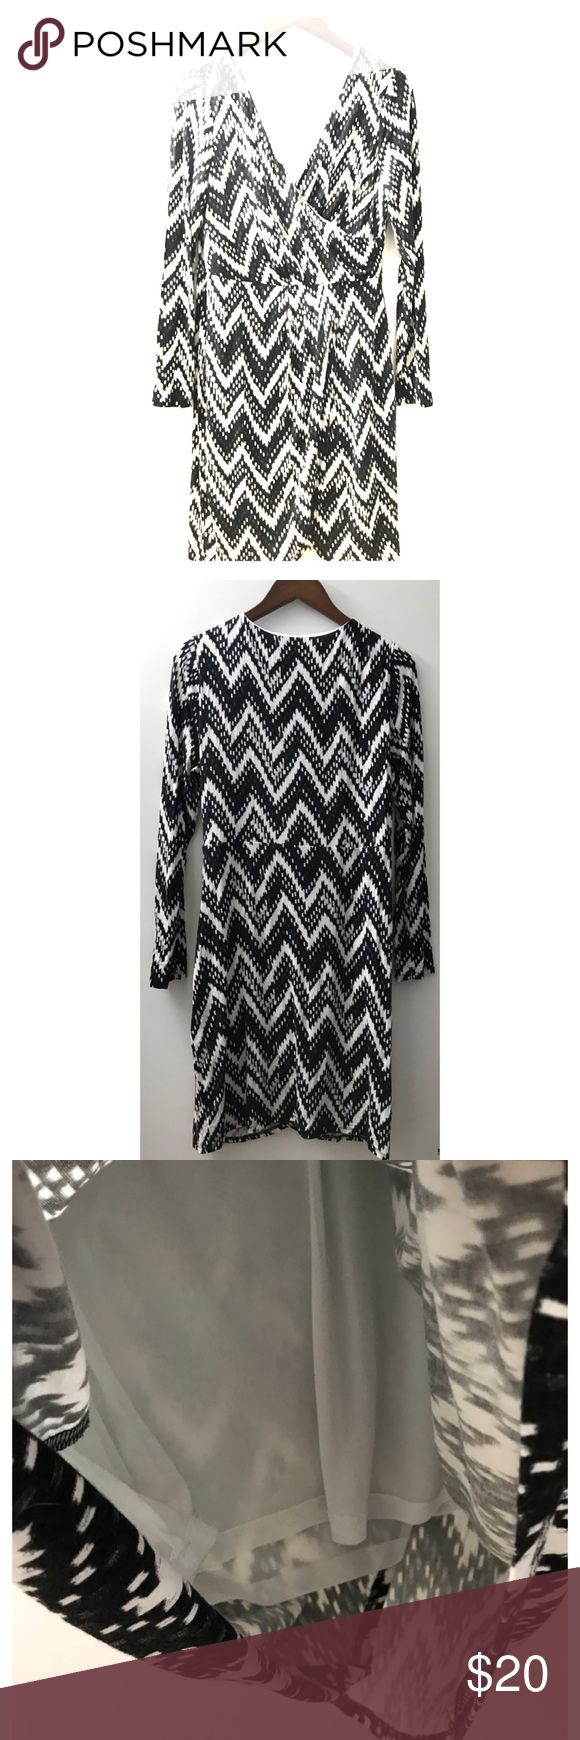 Skies are Blue Chevron Faux Wrap Knit Dress Skies are Blue Chevron Faux Wrap Knit Dress size Large.  This is a re-posh so never worn by me.  Color is black and off-white. Skies Are Blue Dresses Long Sleeve